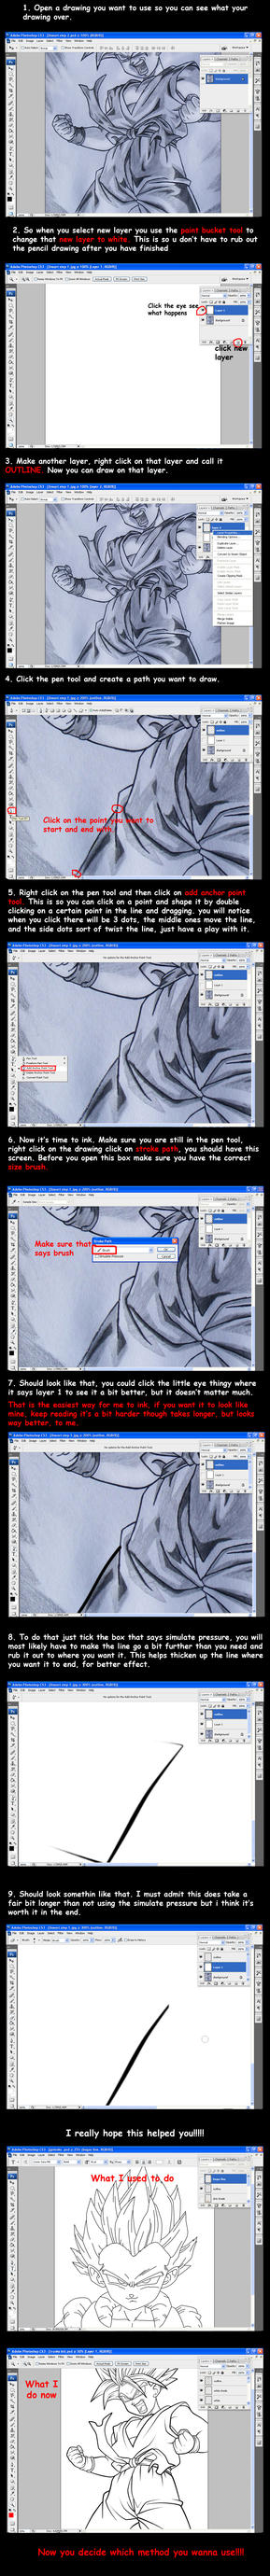 lineart tutorial by Hitmanrulzs22